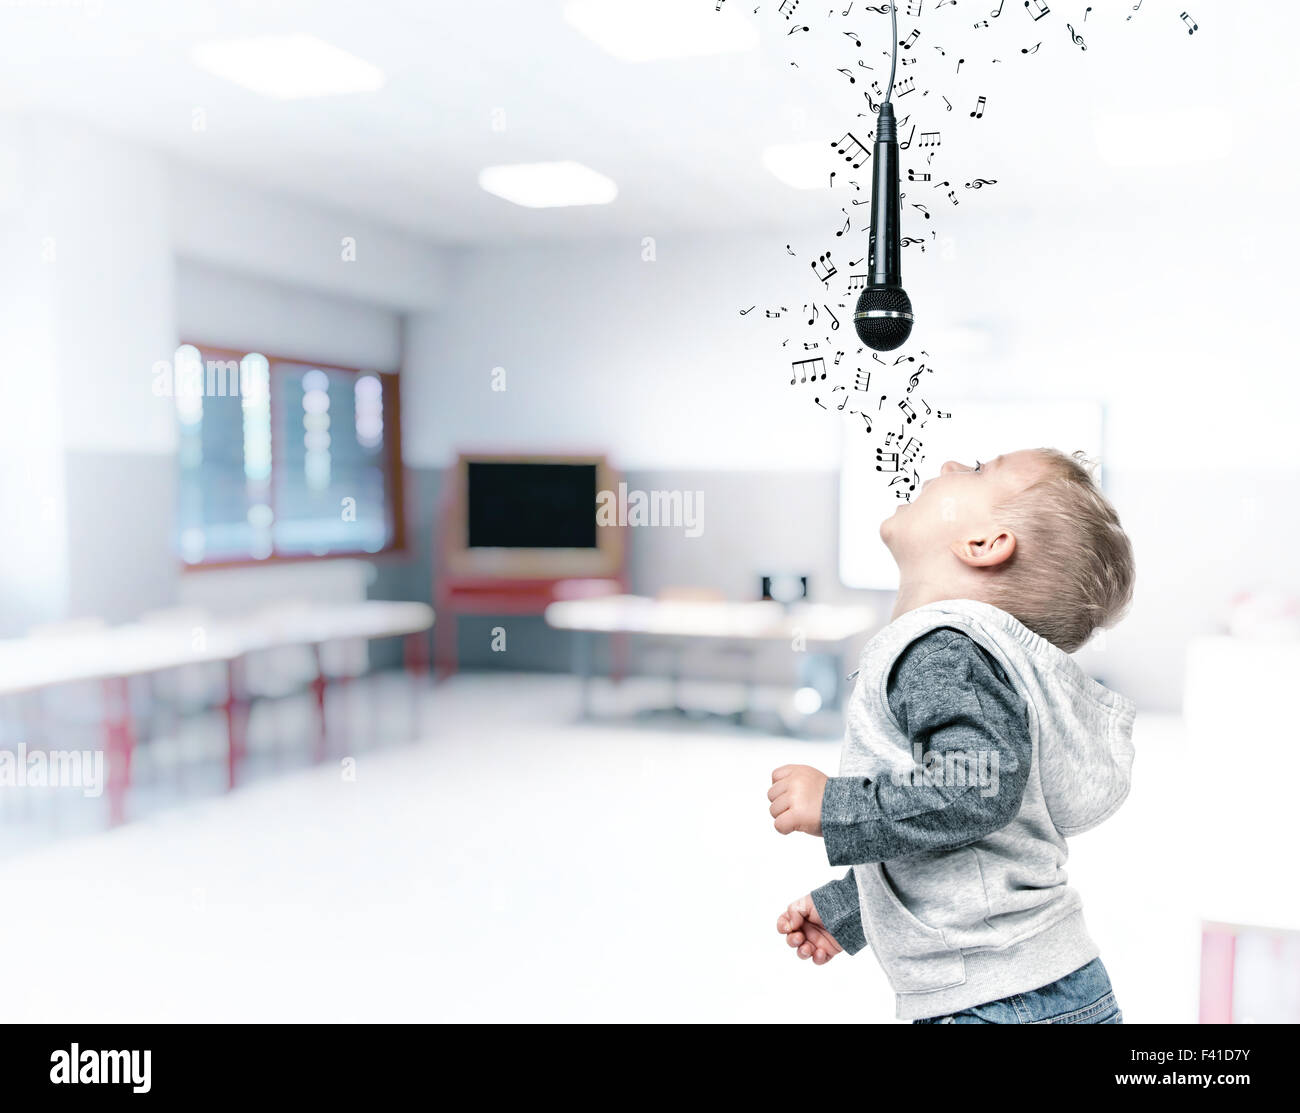 child sing and enjoy with microphonein class - Stock Image